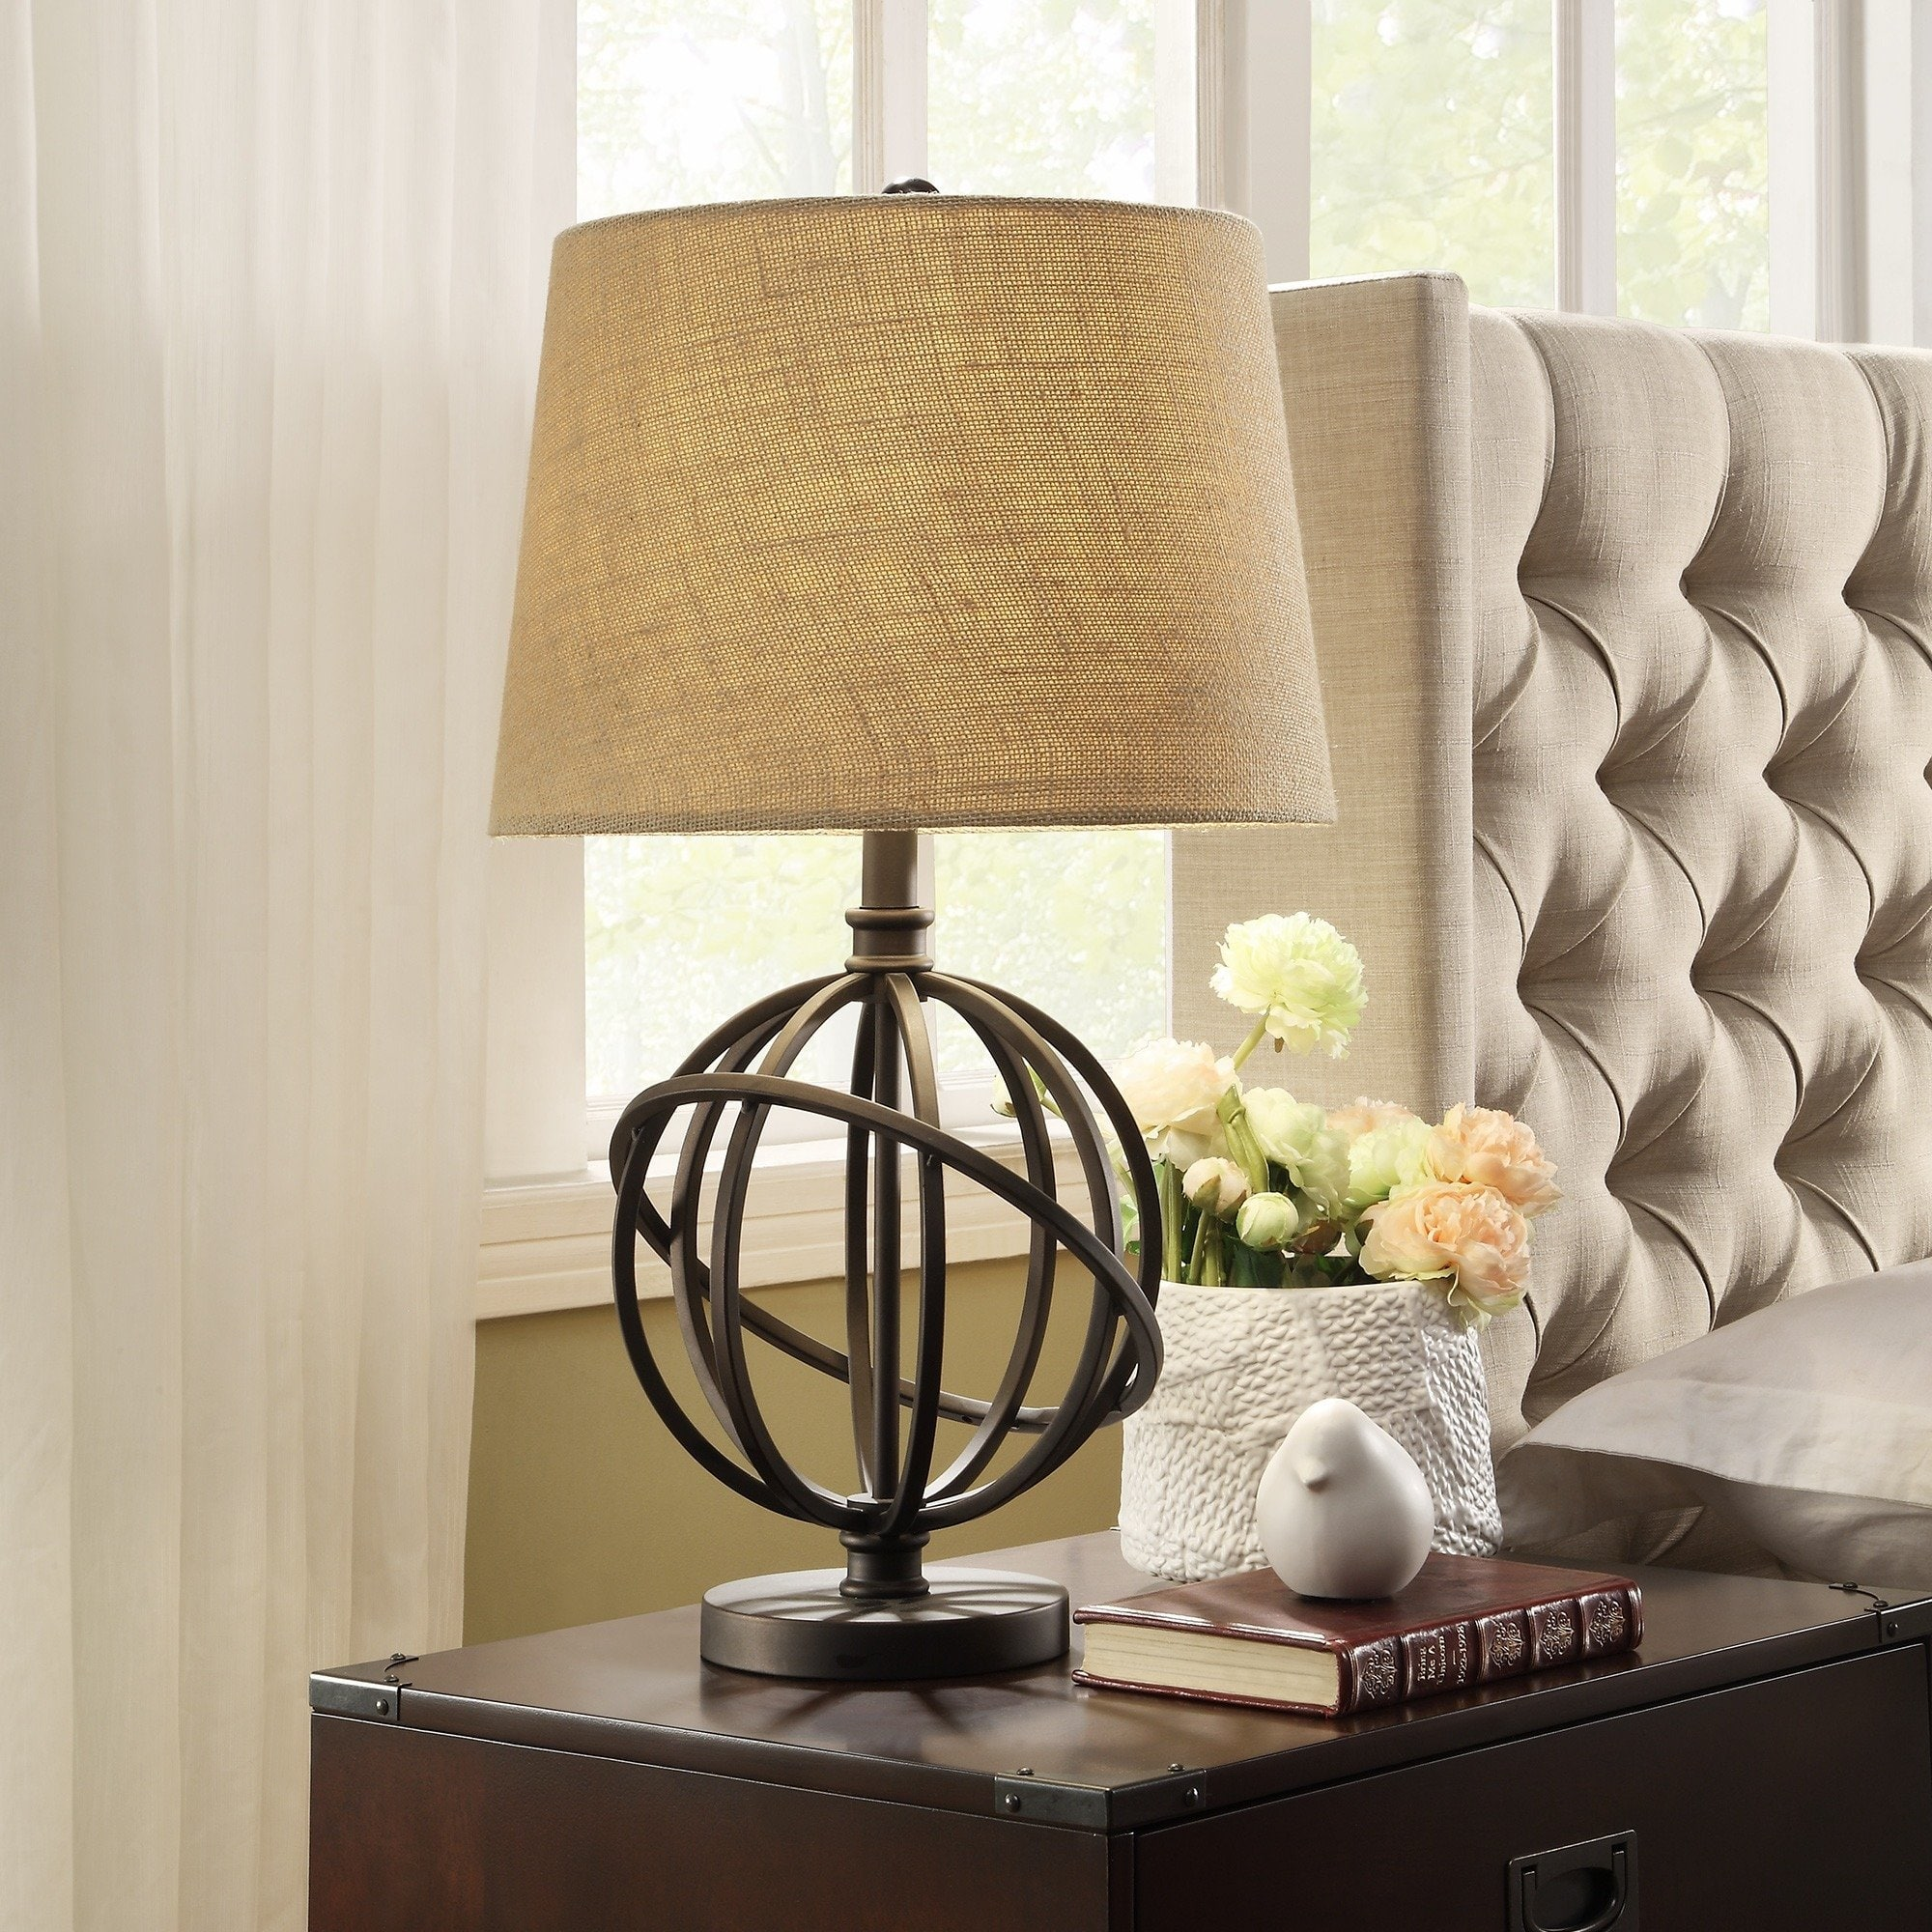 cooper antique bronze metal orbit globe light accent table lamp inspire artisan lighting free shipping today end with wrought iron patio dining granite top tables ikea wooden